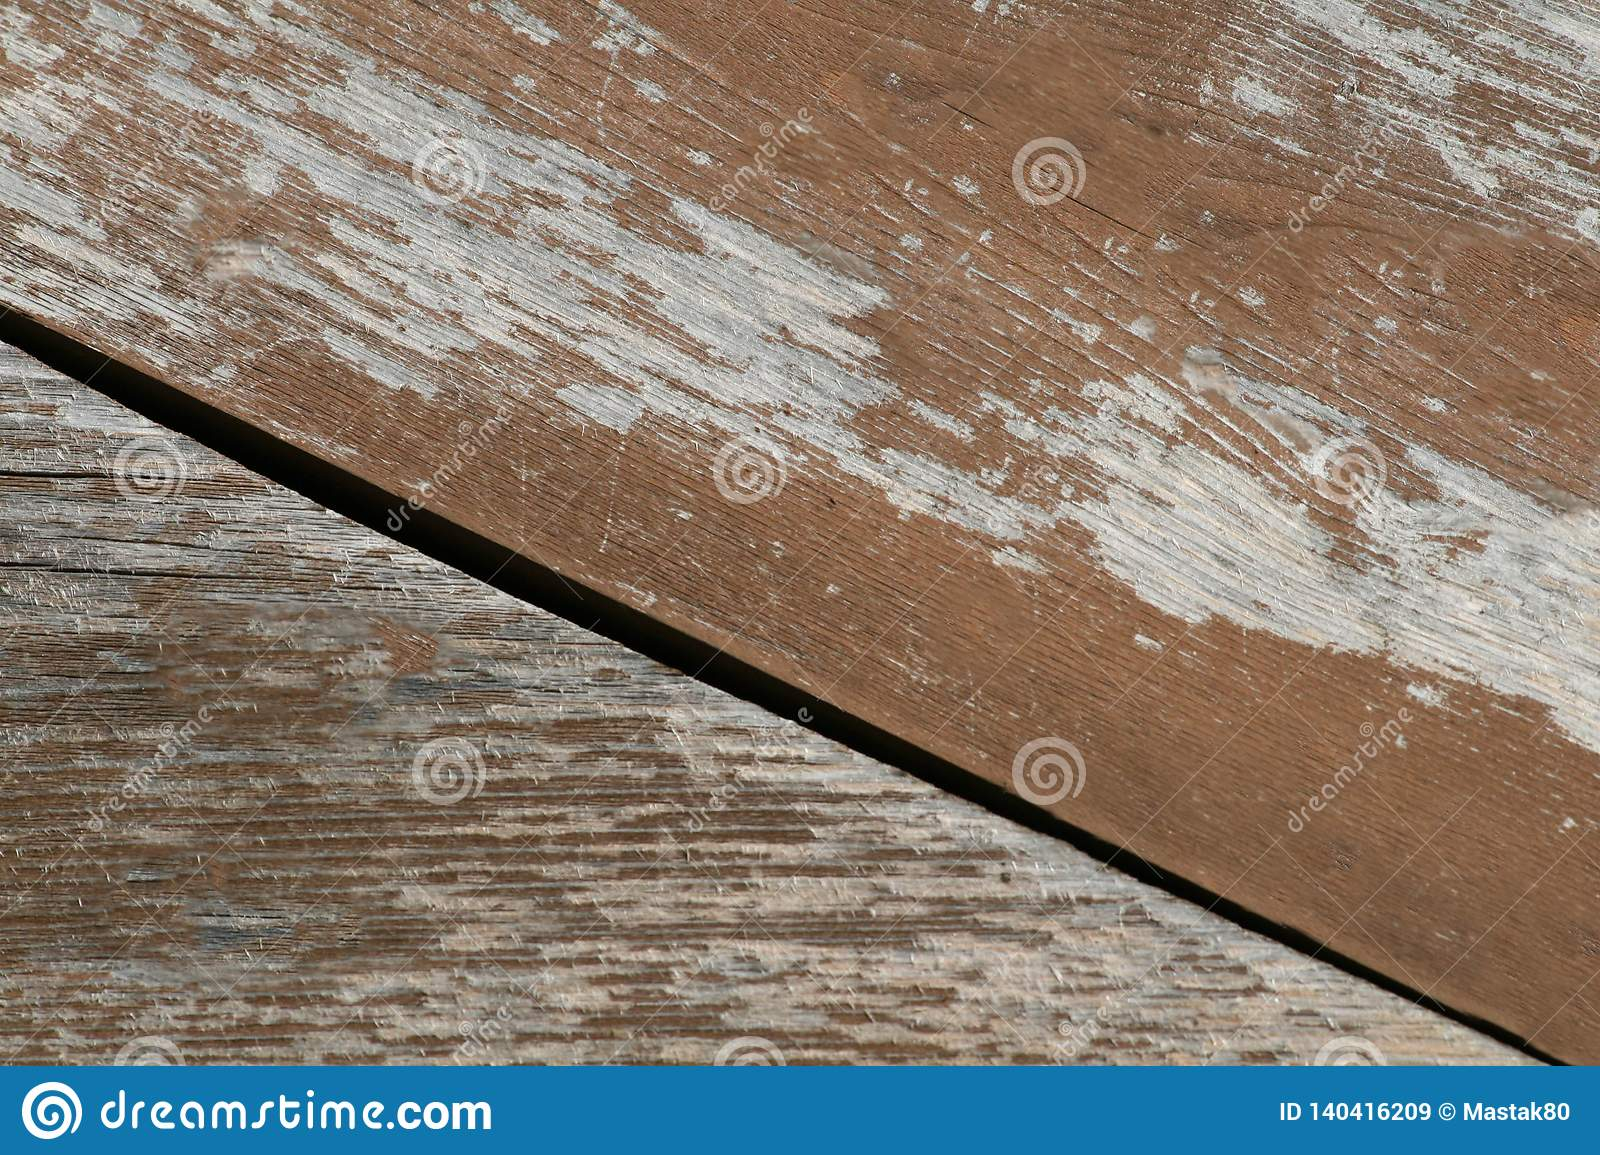 Flaky brown paint on the old wooden surface of the Board